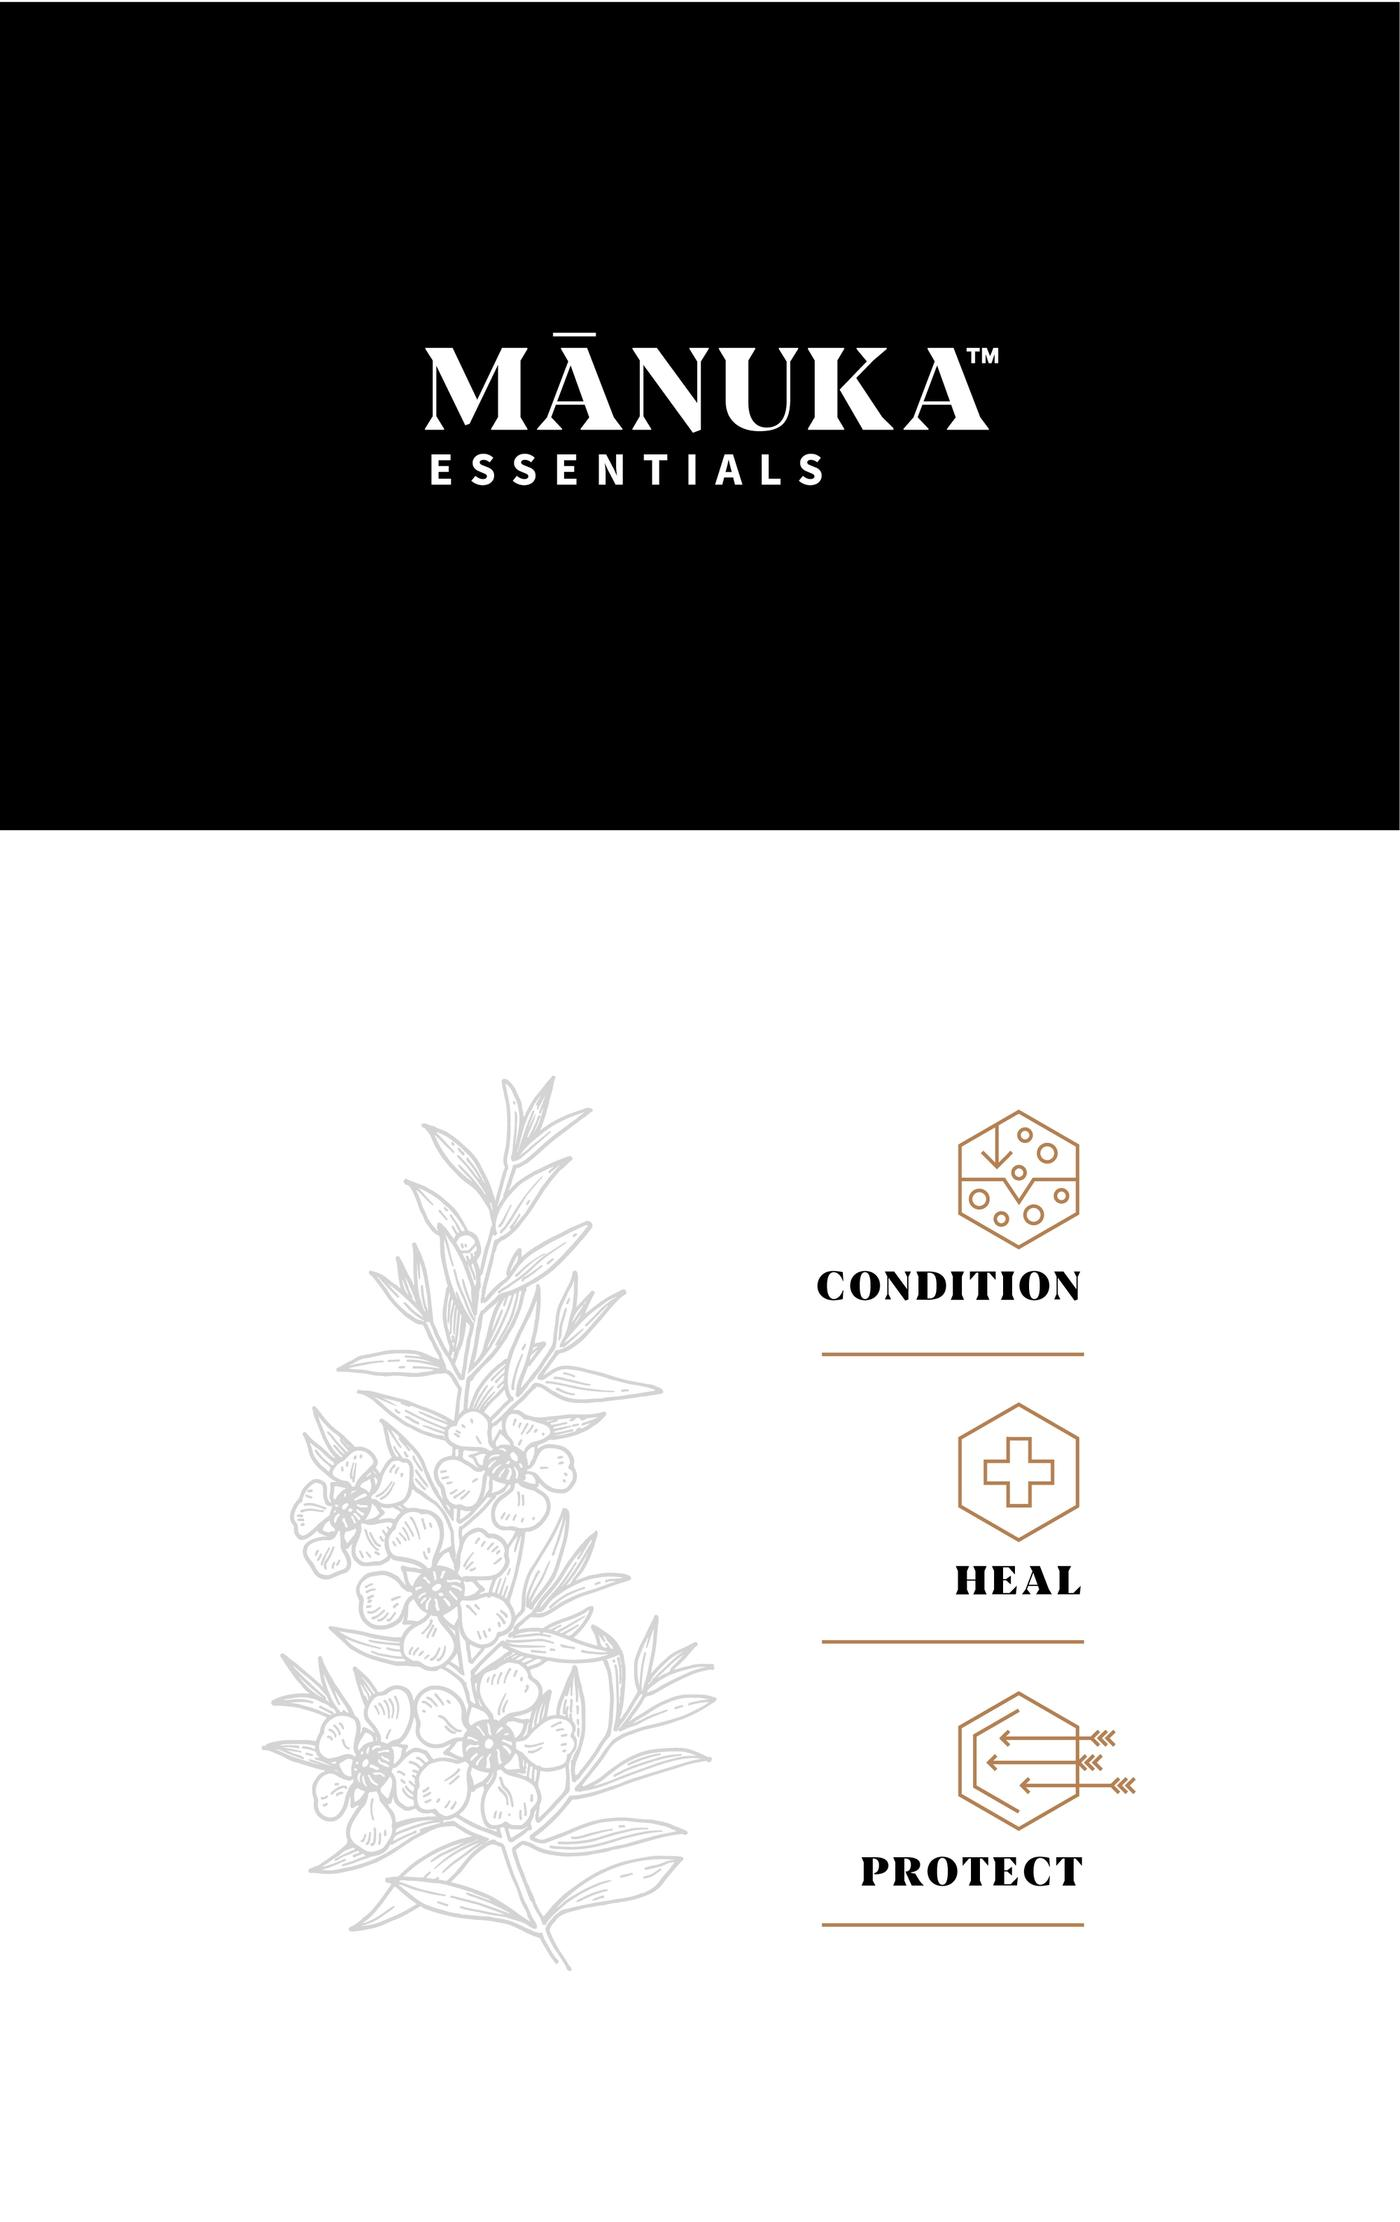 Manuka essentials identity